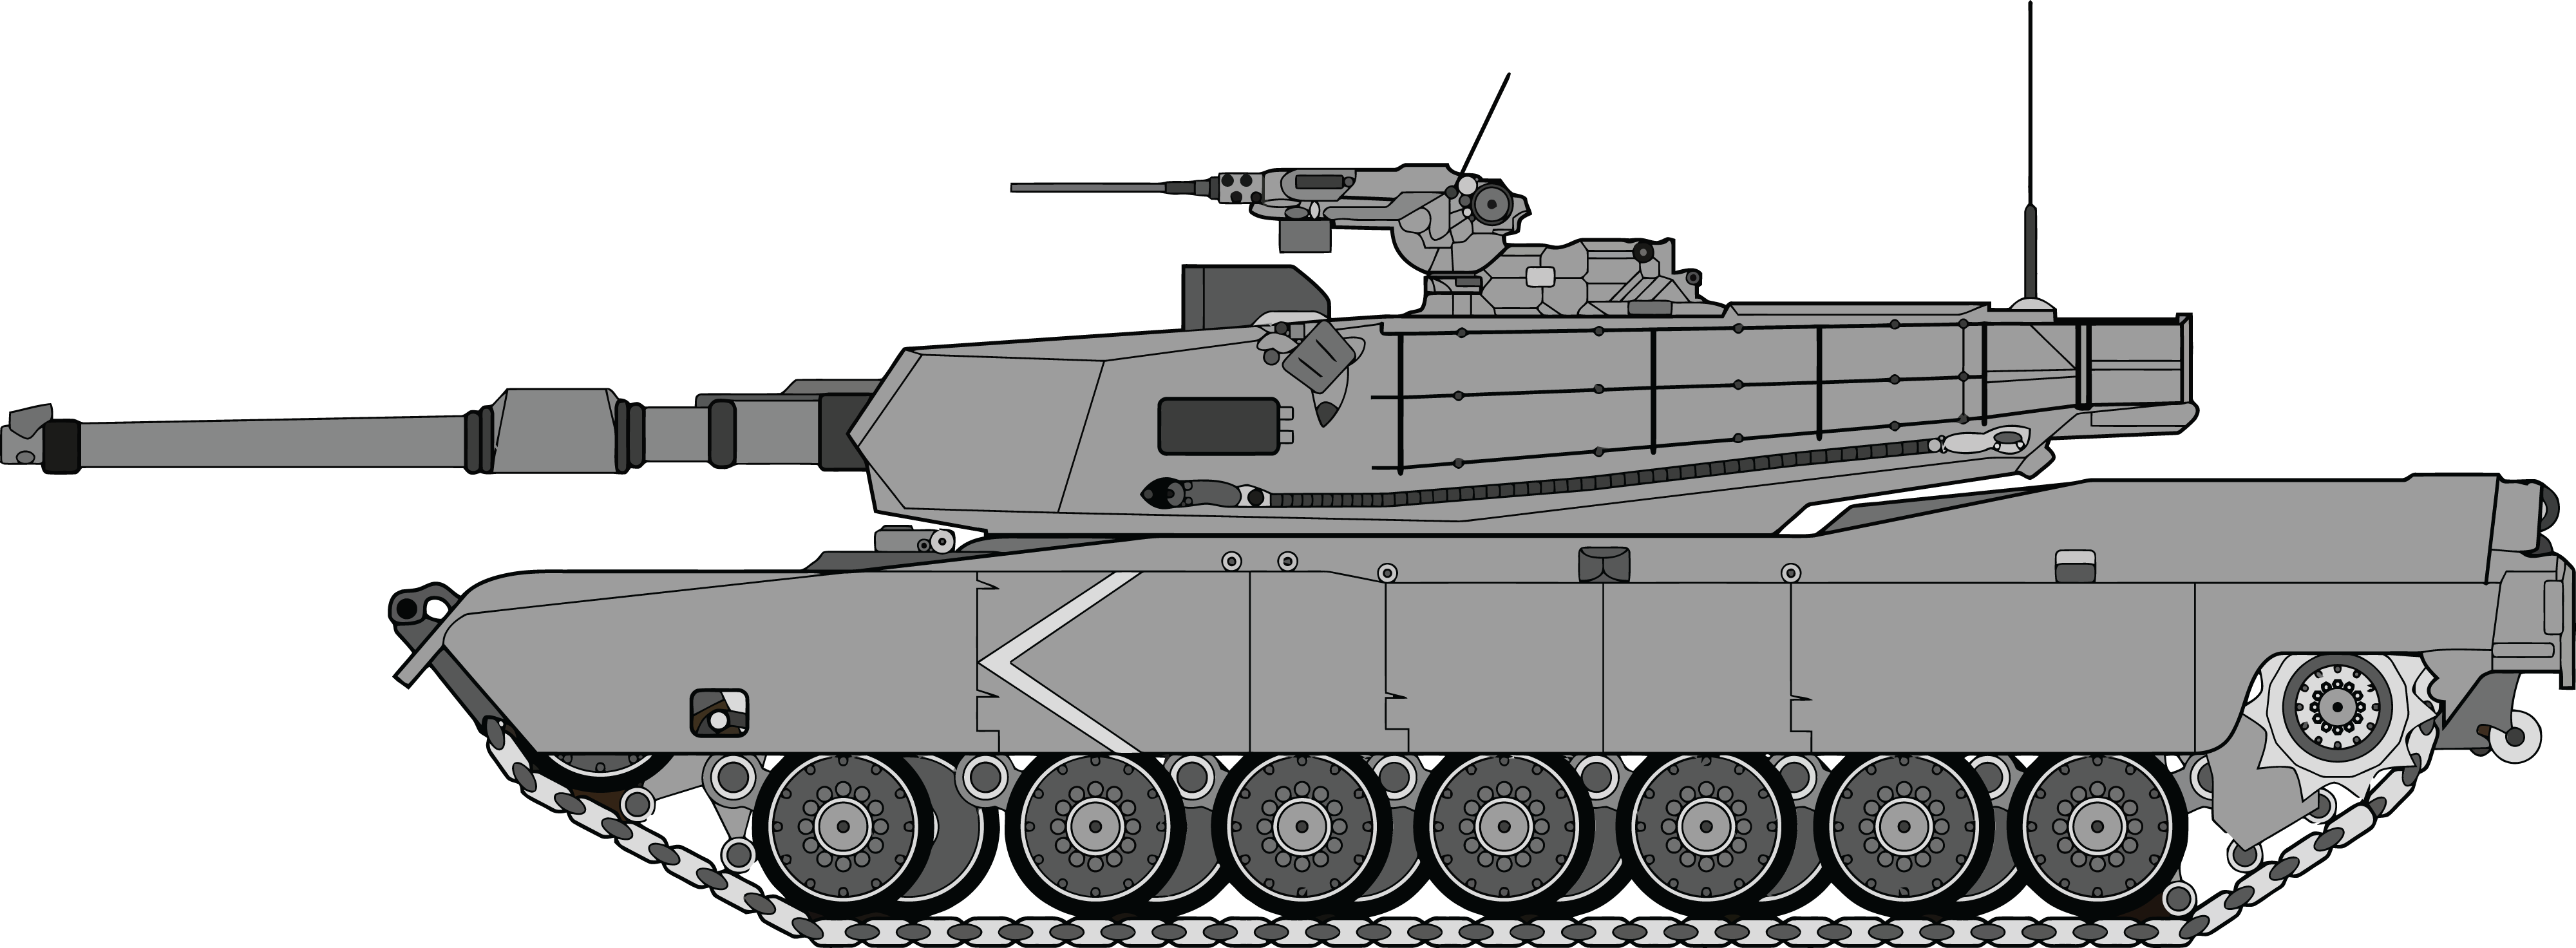 collection of transparent. Military clipart simple tank